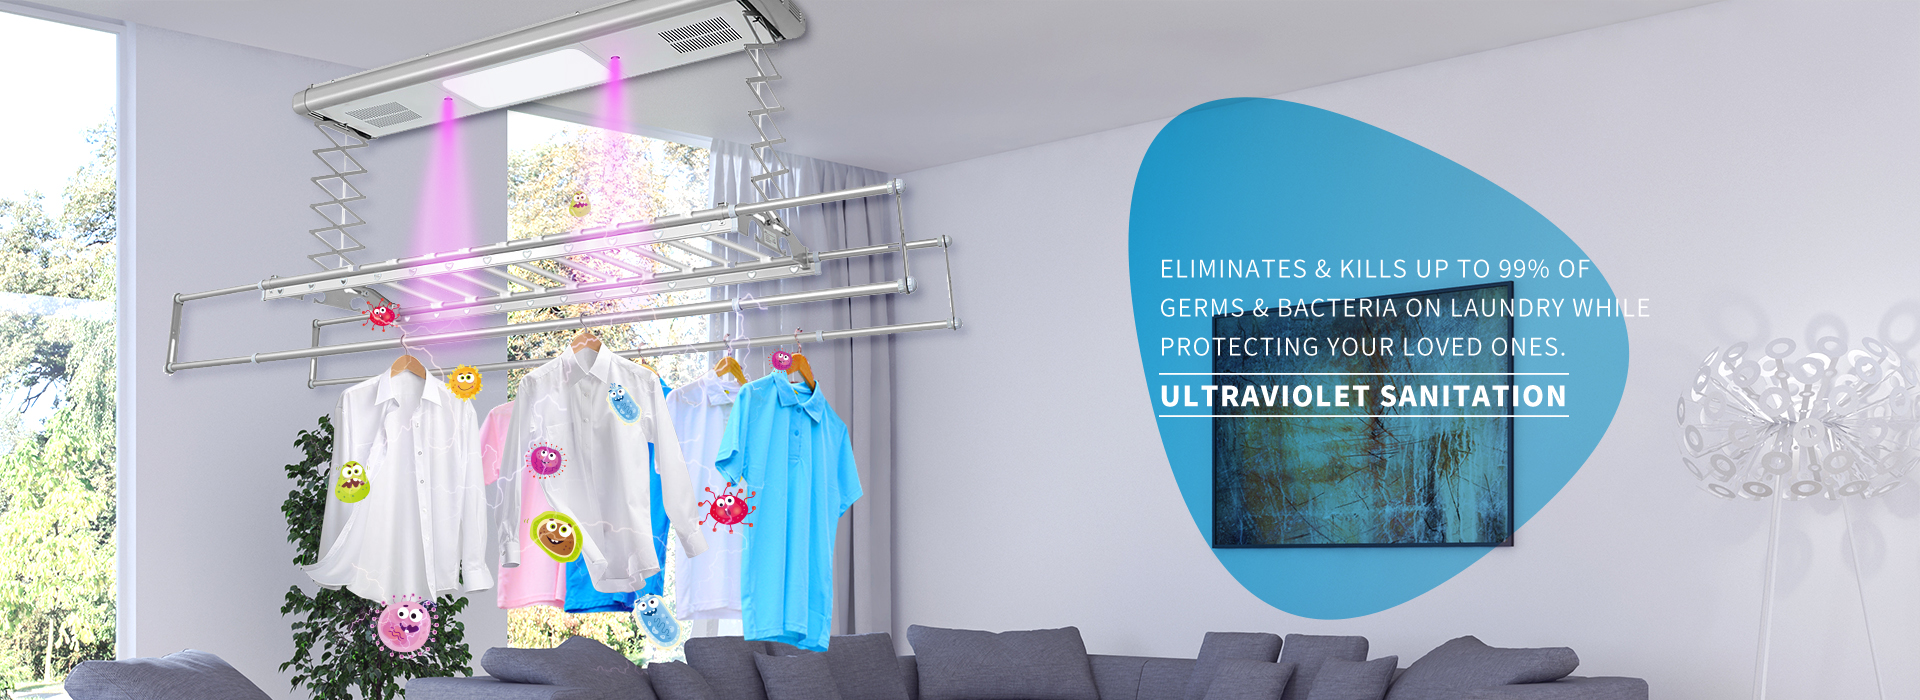 Mensch - ultraviolet sanitation smart laundry system